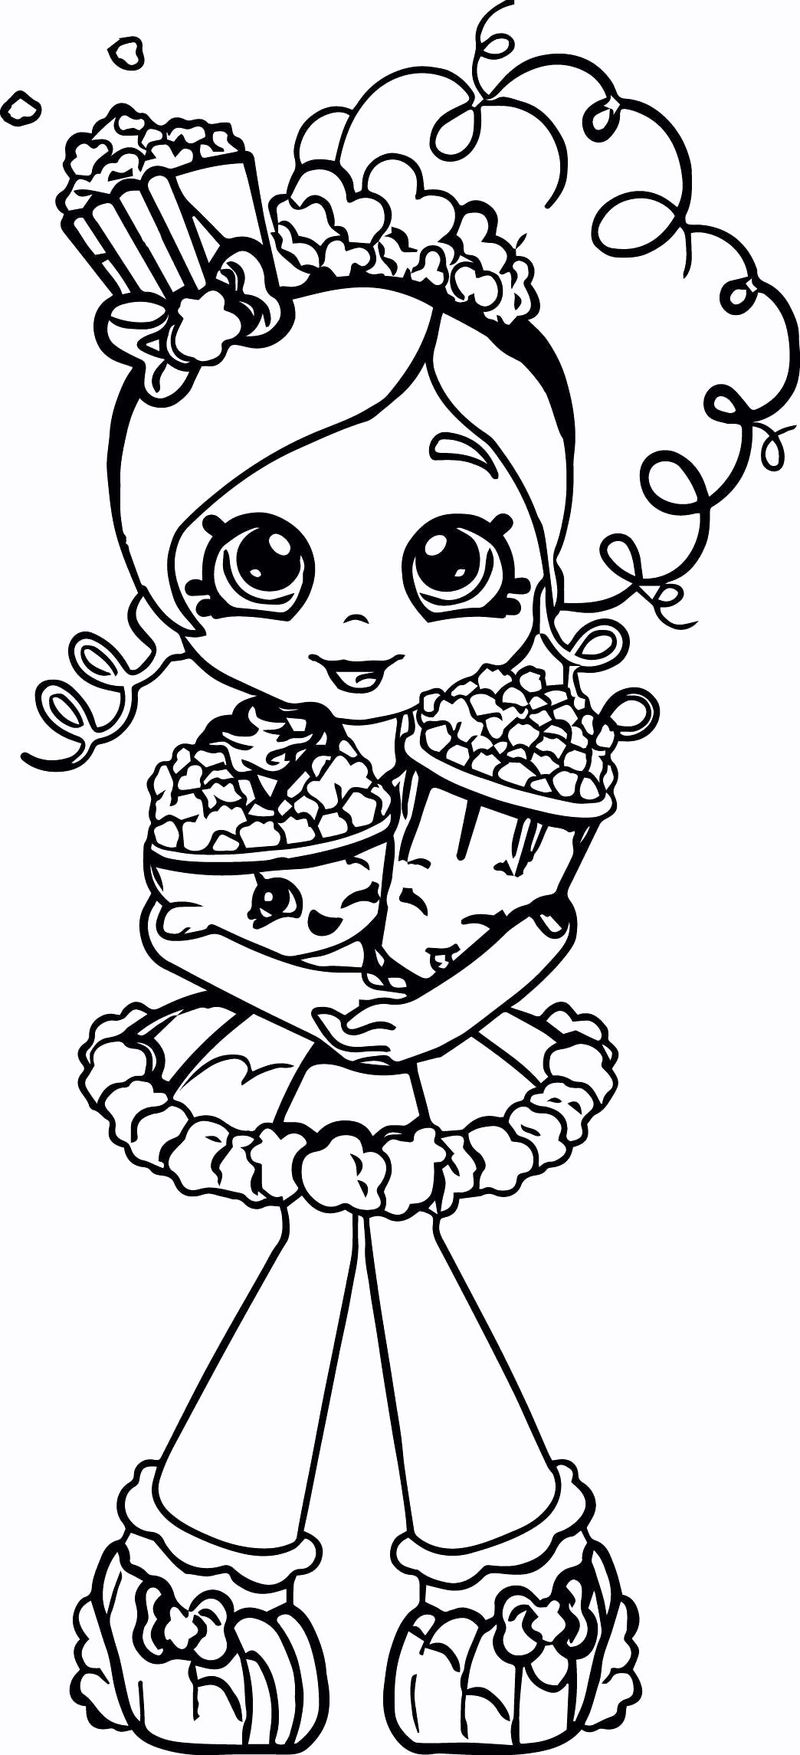 shopkin coloring pages that you can print